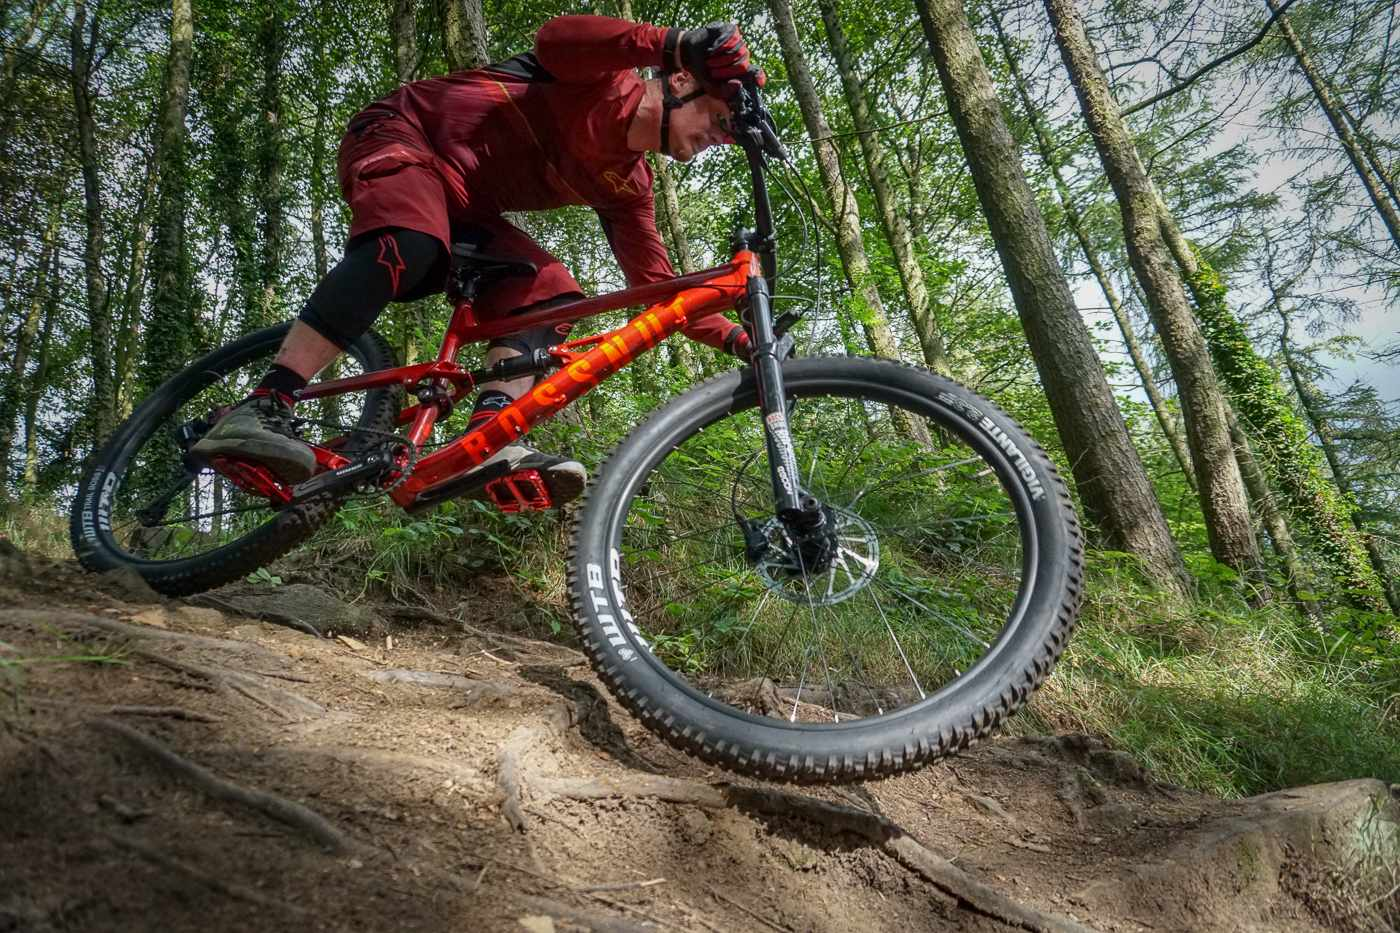 2020 calibre bossnut first ride impressions